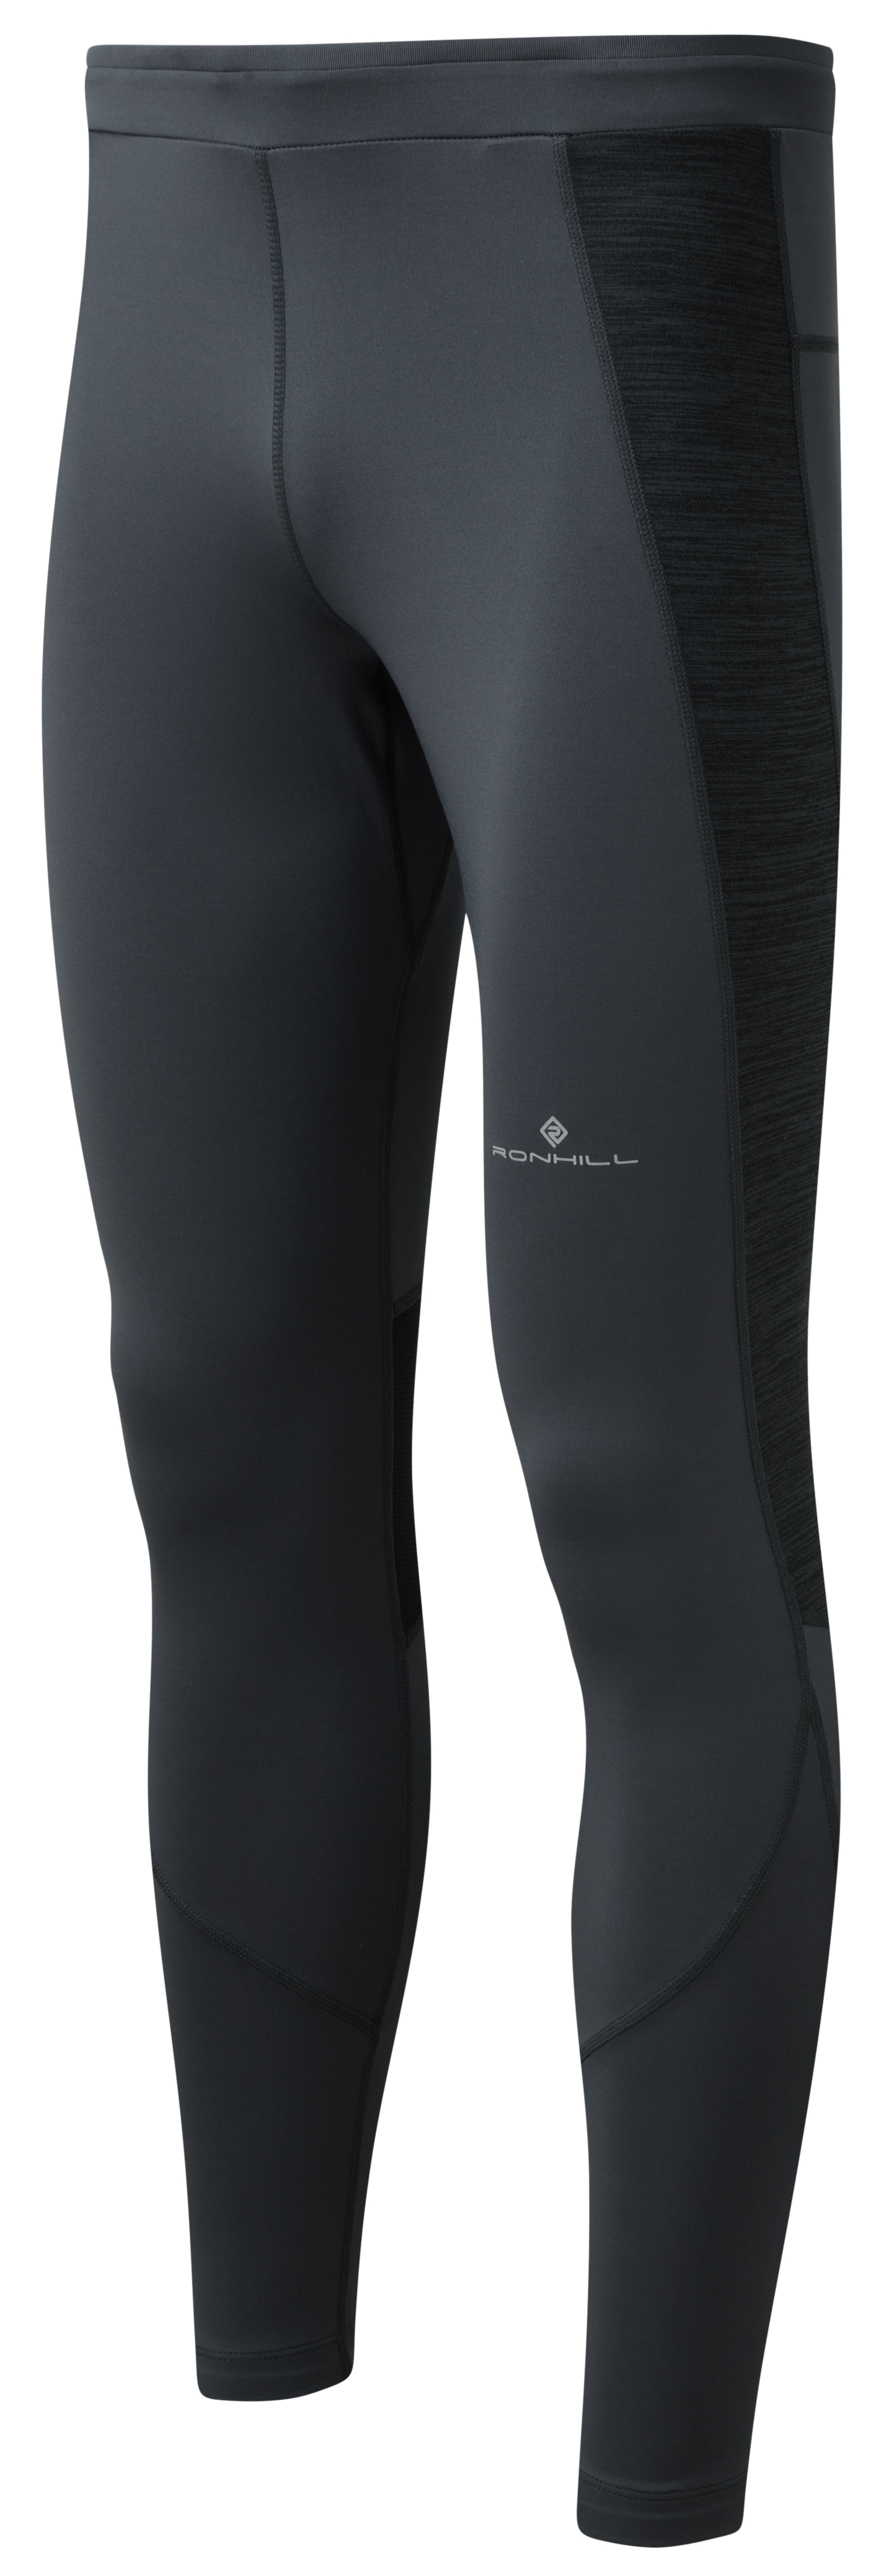 Ronhill Momentum Tight   Trousers